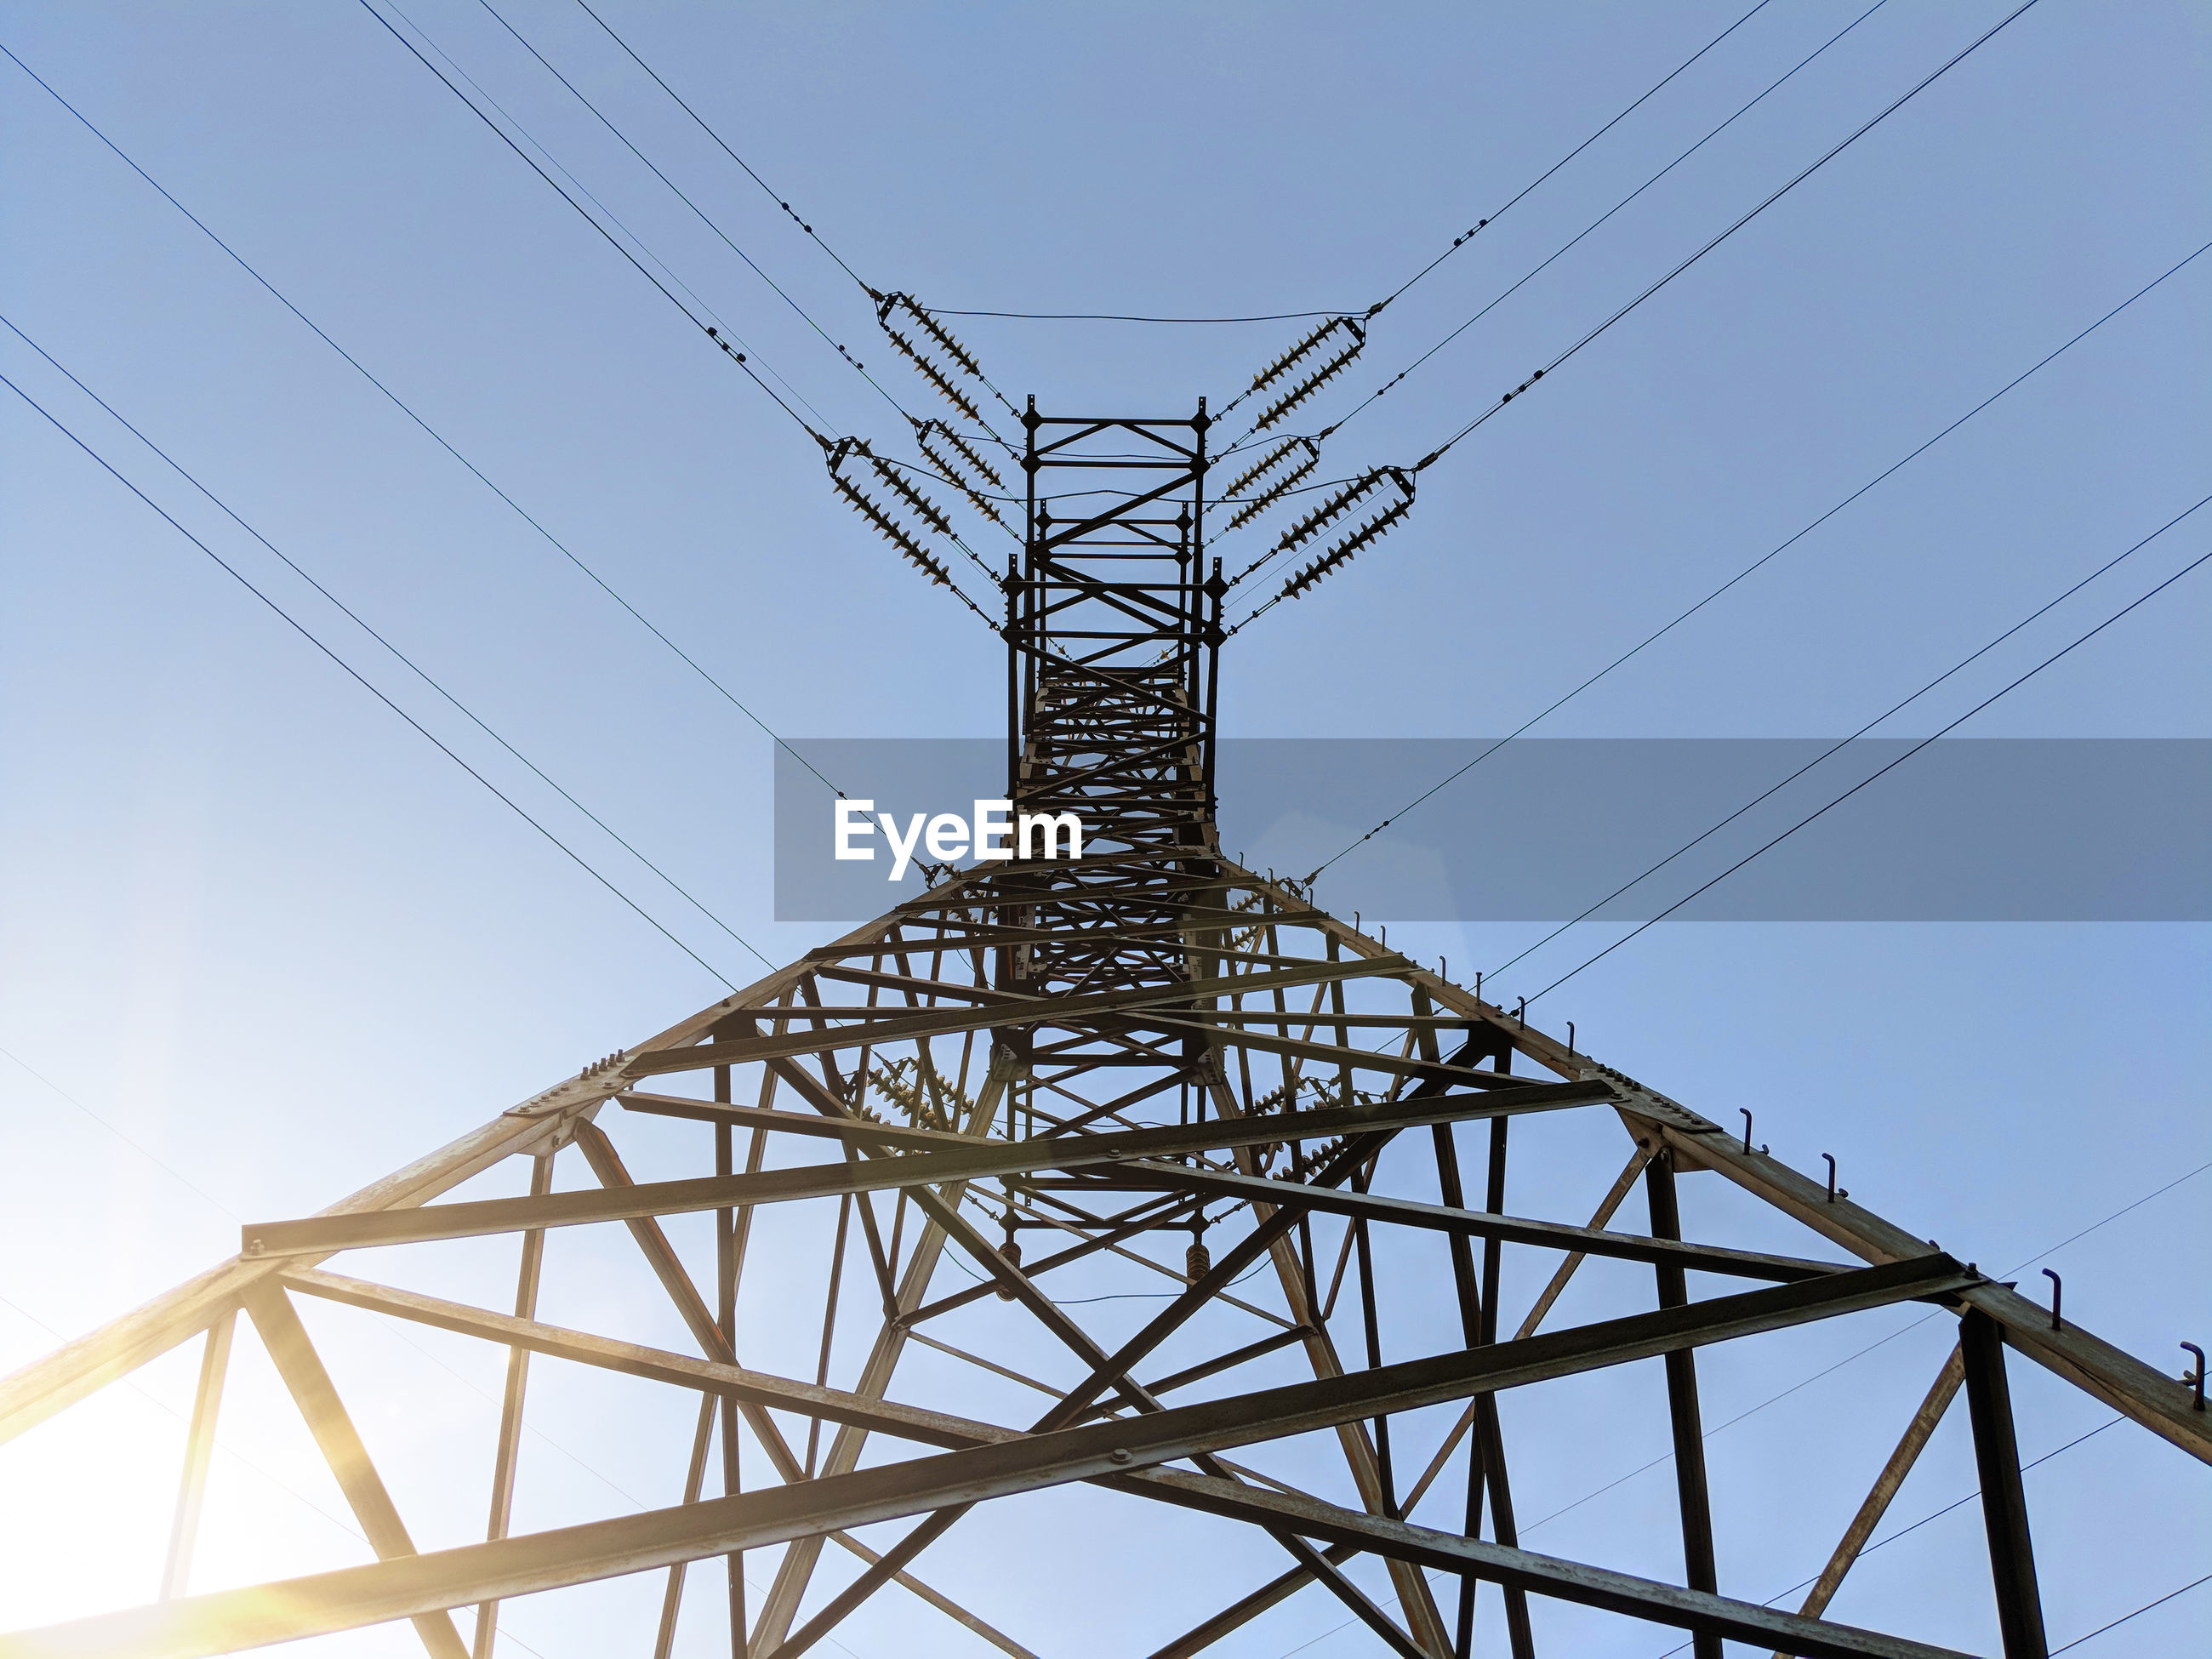 Low angle view of electricity pylon against clear sky during sunny day